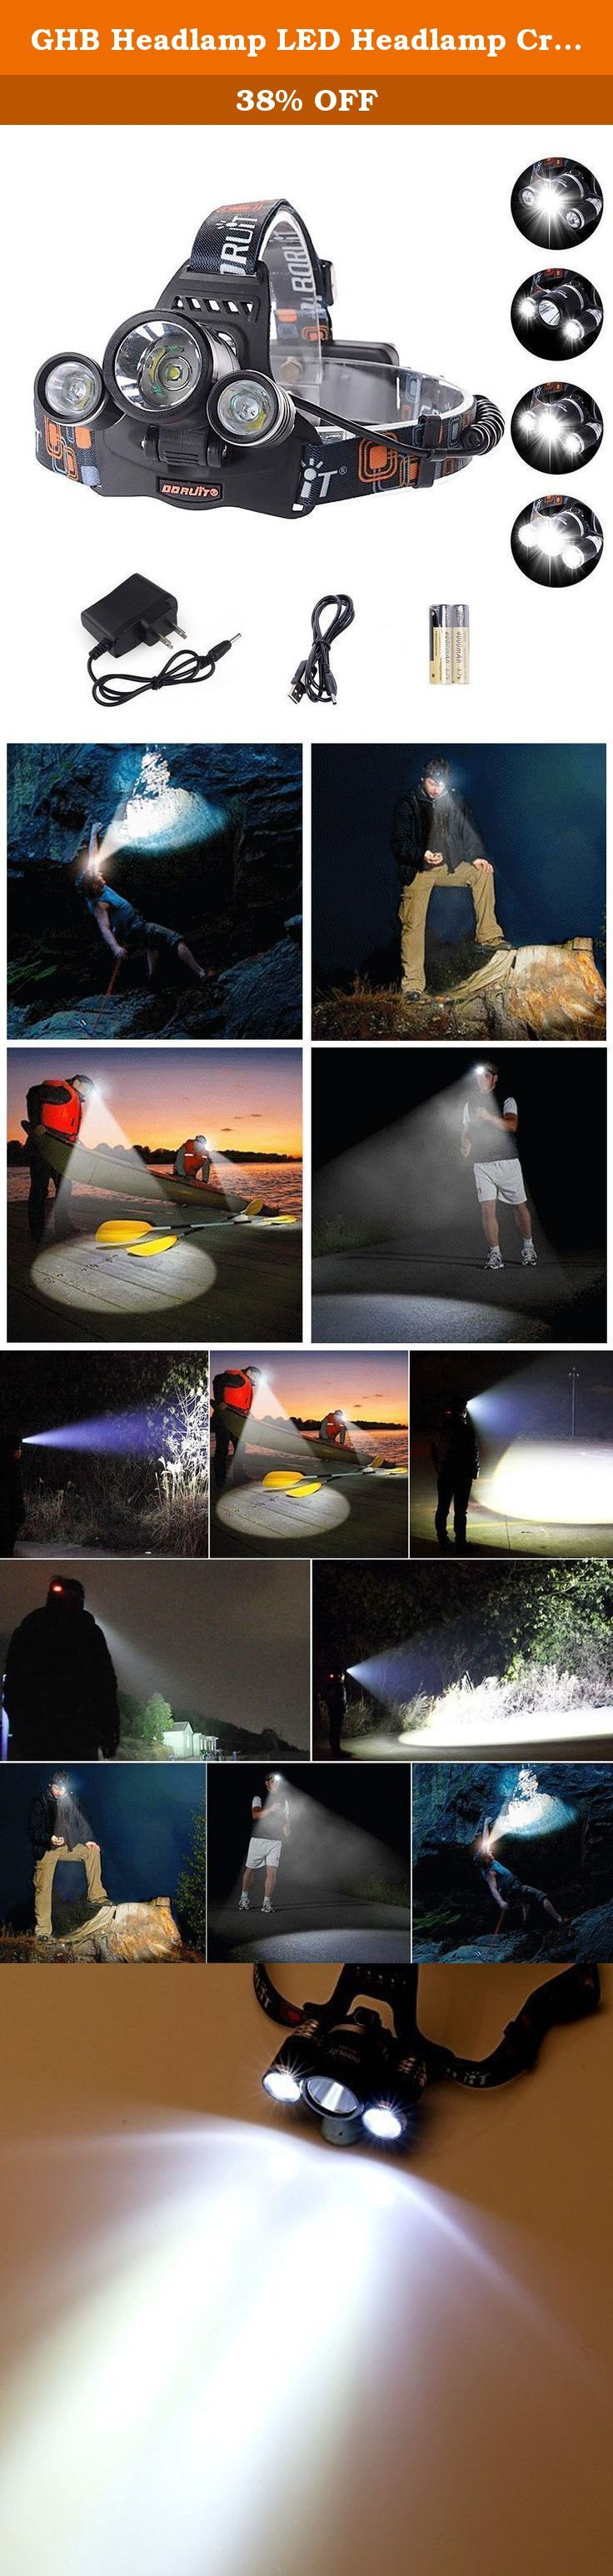 GHB Headlamp LED Headlamp Cree XM L T6 6000LM Flashlight 3x LED 4 Modes Headlamp for Camping Hiking Hunting. Product Description: - Material: aluminum alloy; Elastic head strap - LED type: 3x Cree XM-L T6 - Output bright: up to 6000 Lm - 4 Modes: 1LED/ 2LED/3LED/ Flashing (from weak light to bright light) - Waterproof design, but do not put it directly in the water - Weight: 360g/12.8 oz - Range: 300 - 500M - Input: AC 90 - 264V - Adjustable and flexible headband. The length of the…